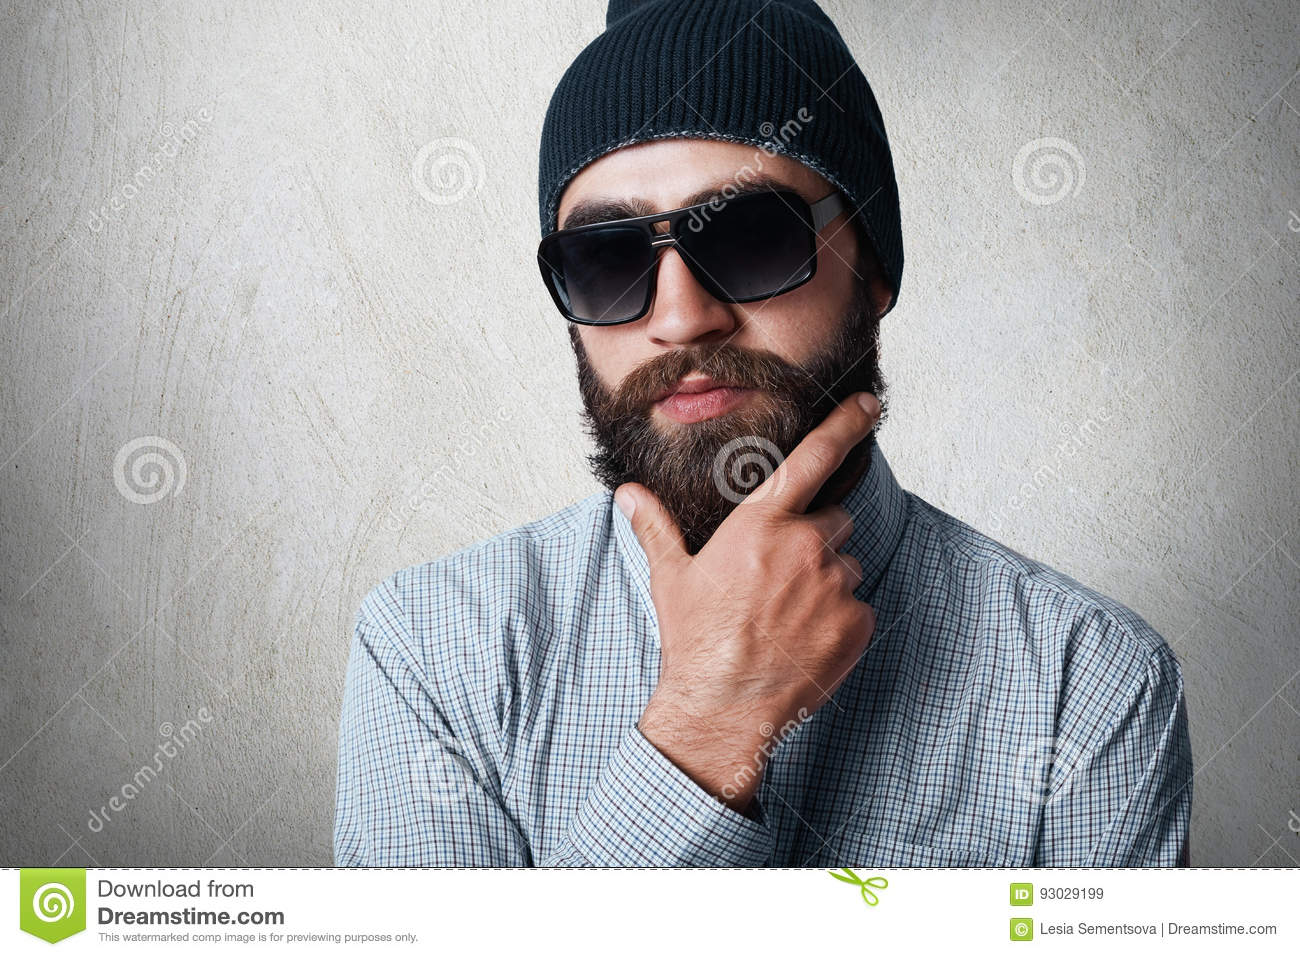 Close-up portrait of handsome bearded man wearing stylish black cap, checked shirt and sunglasses holding his hand on thick beard